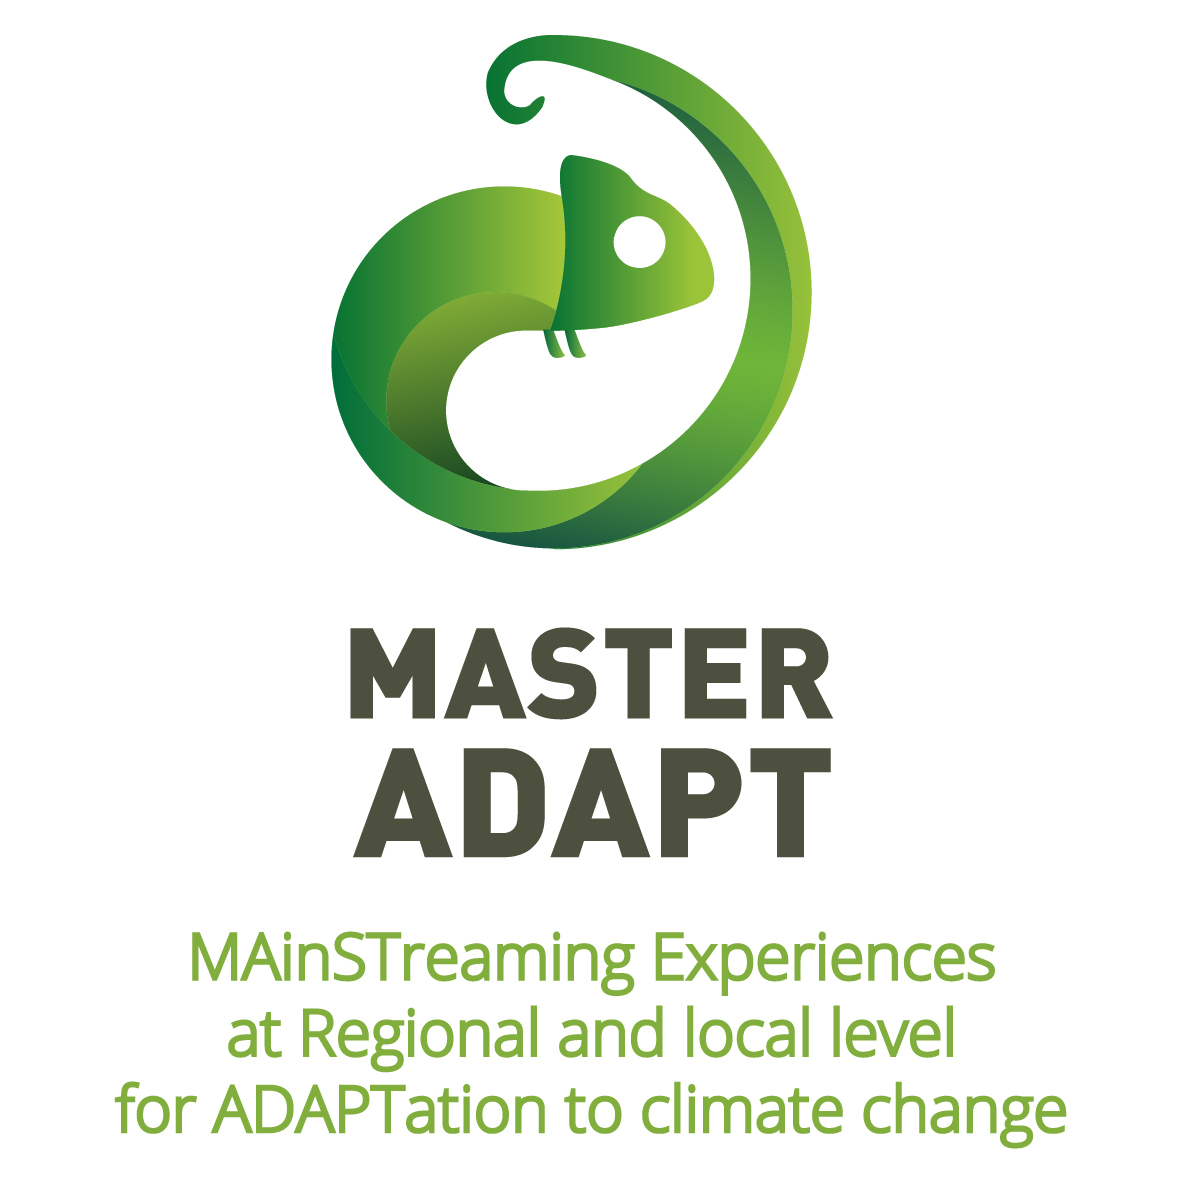 MASTER ADAPT - MAinSTreaming Experiences at Regional and local level for ADAPTation to climate change.